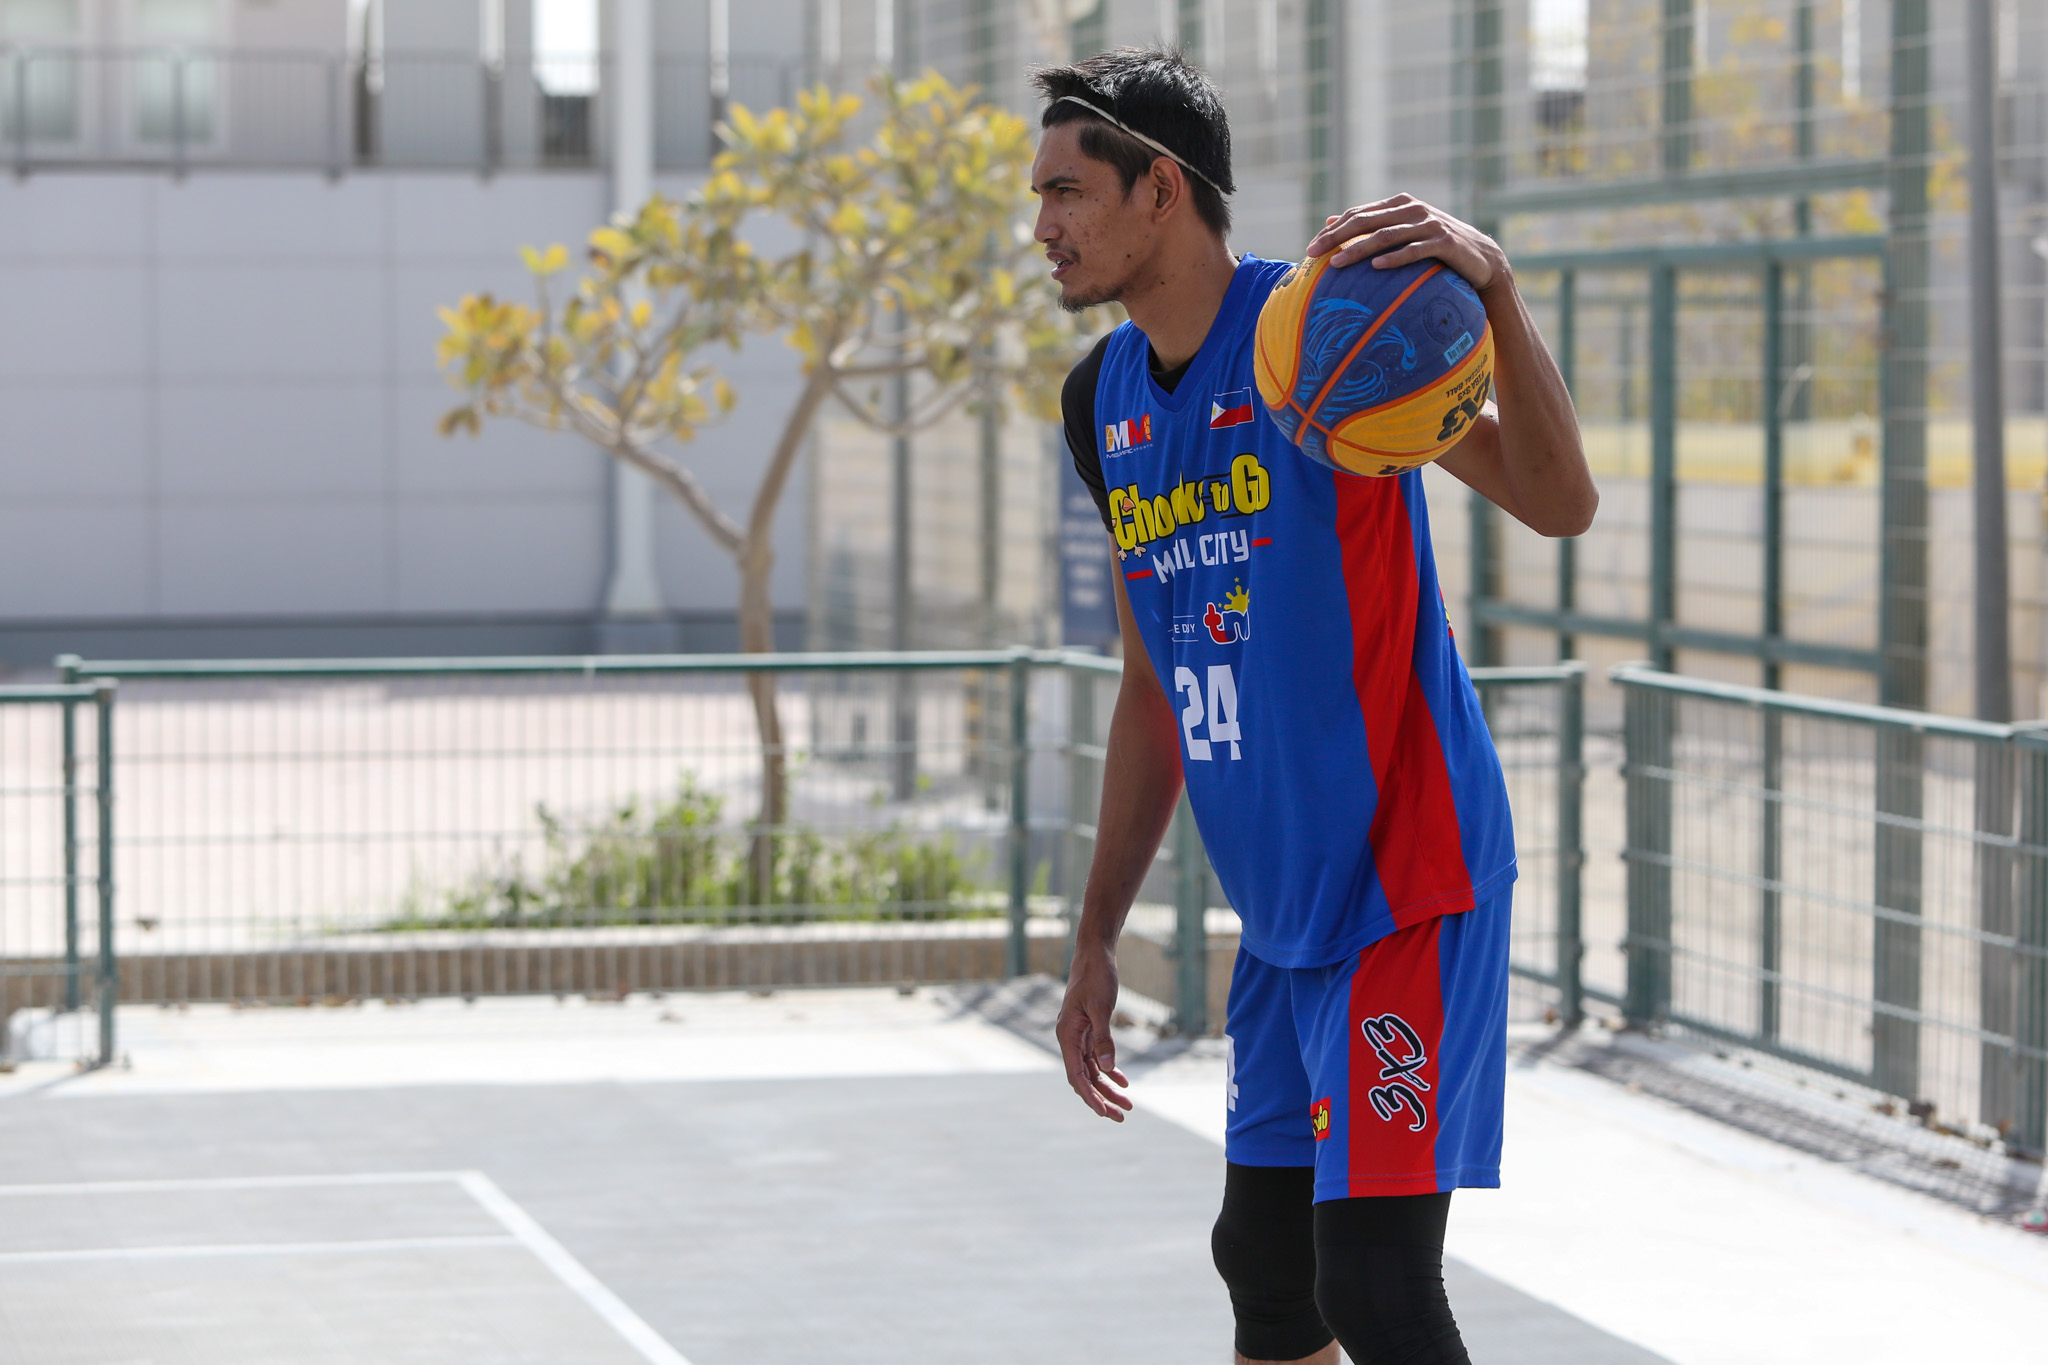 2021-FIBA-3X3-Doha-Masters-Manila-Chooks-first-practice-Dennis-Santos Aldin Ayo out to prove himself once more 3x3 Basketball Chooks-to-Go Pilipinas 3x3 News  - philippine sports news